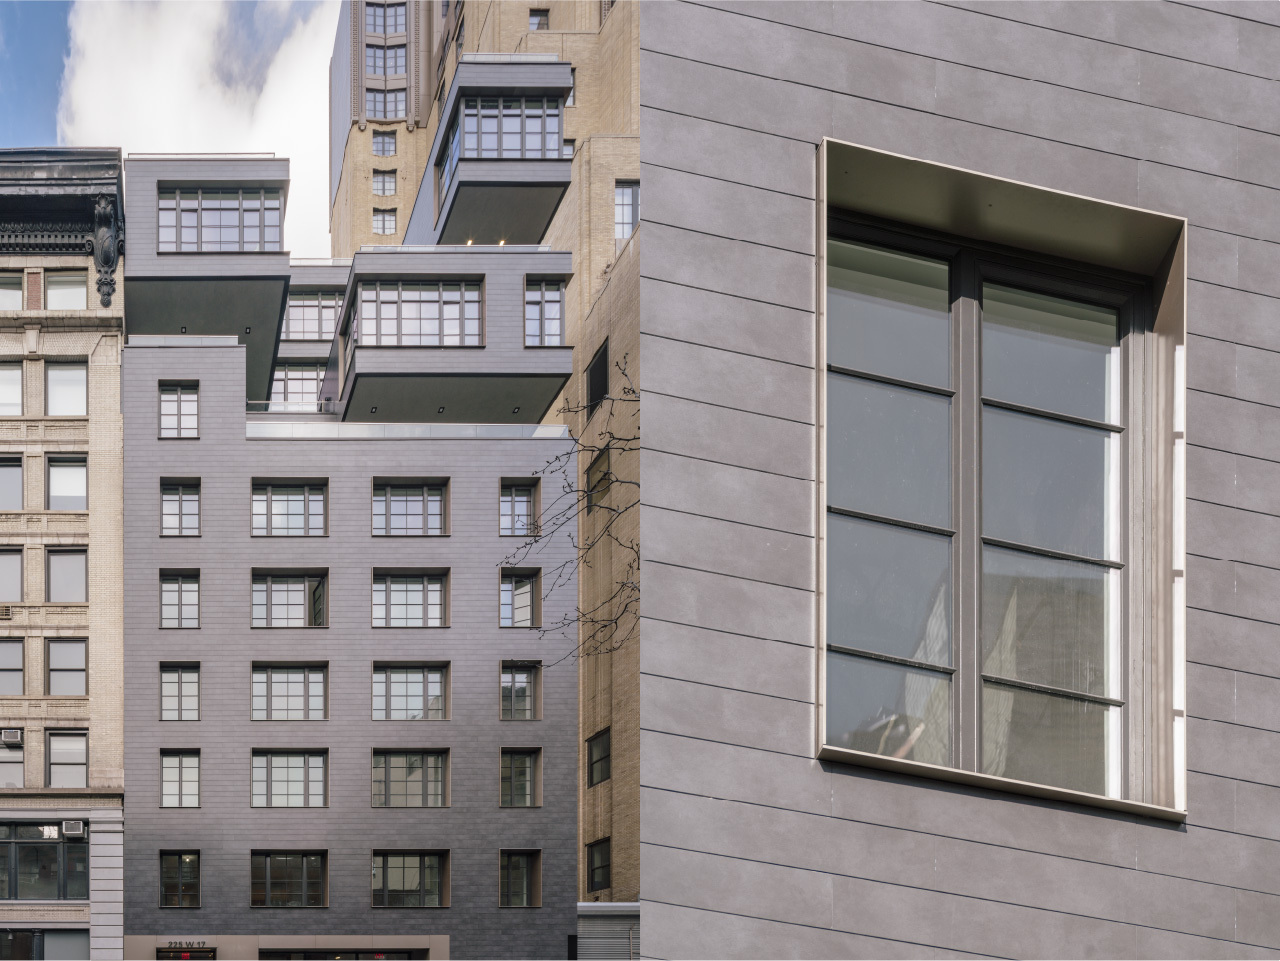 221 West 17 Street Street facade with porcelain cladding and Metal window trim at porcelain facade